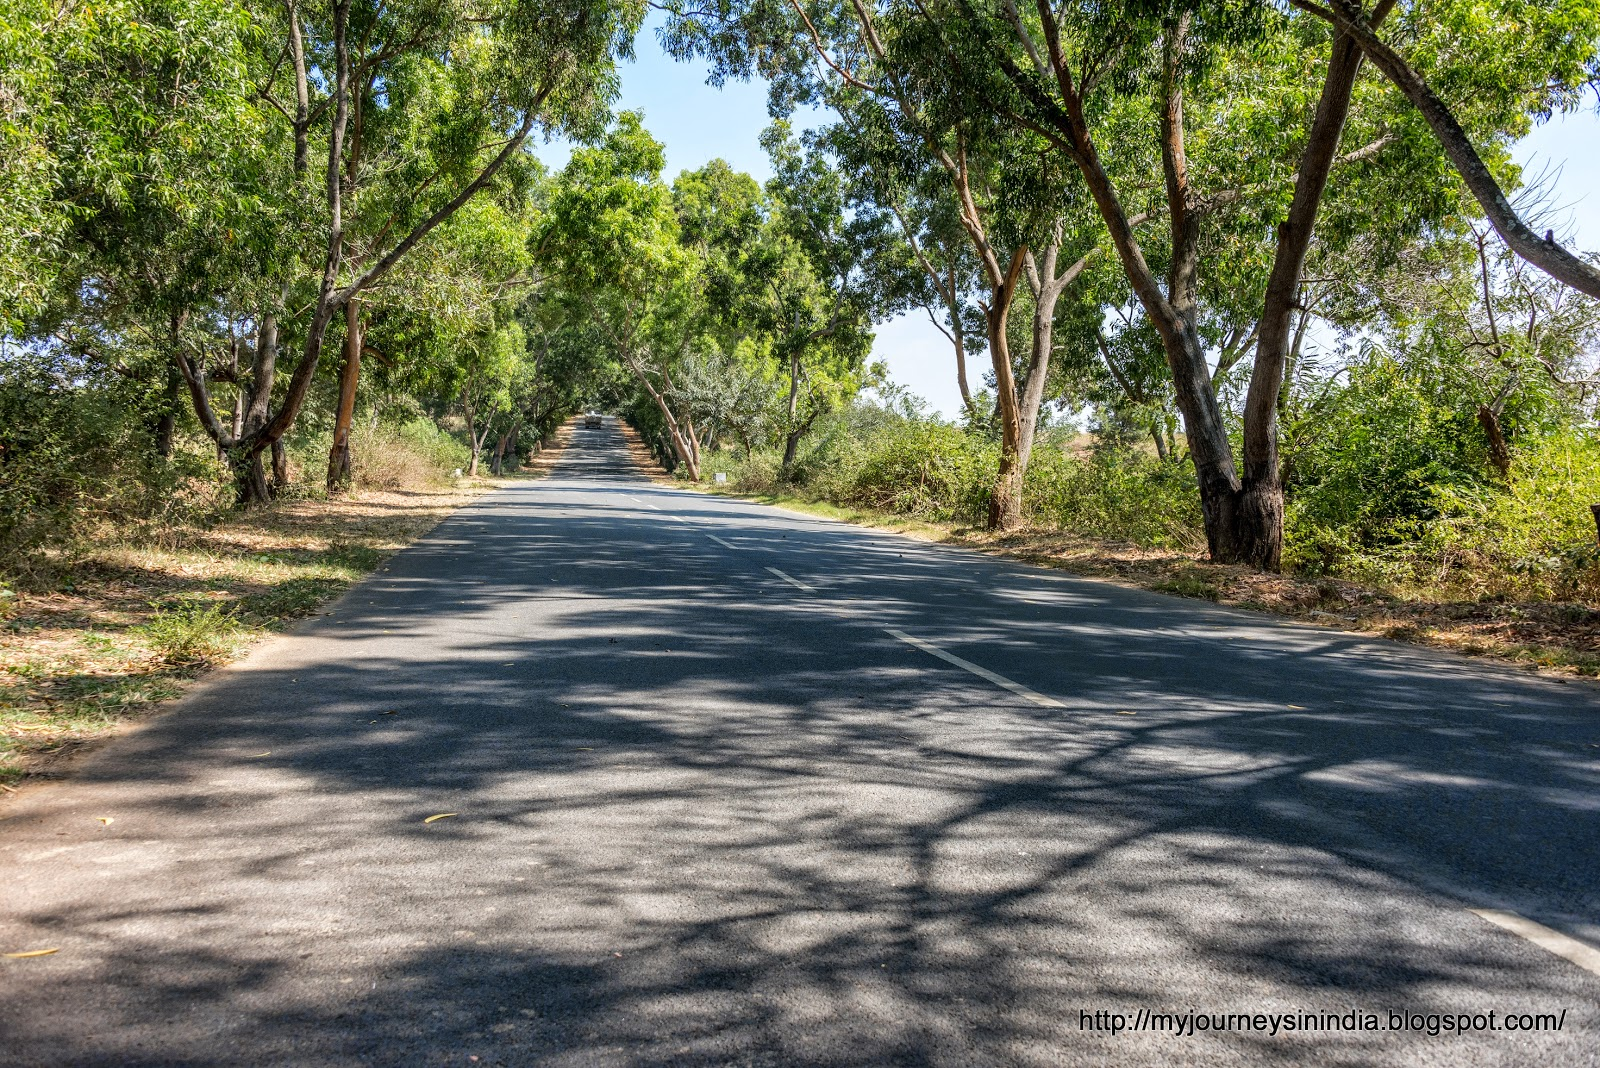 Road to Denkanikottai